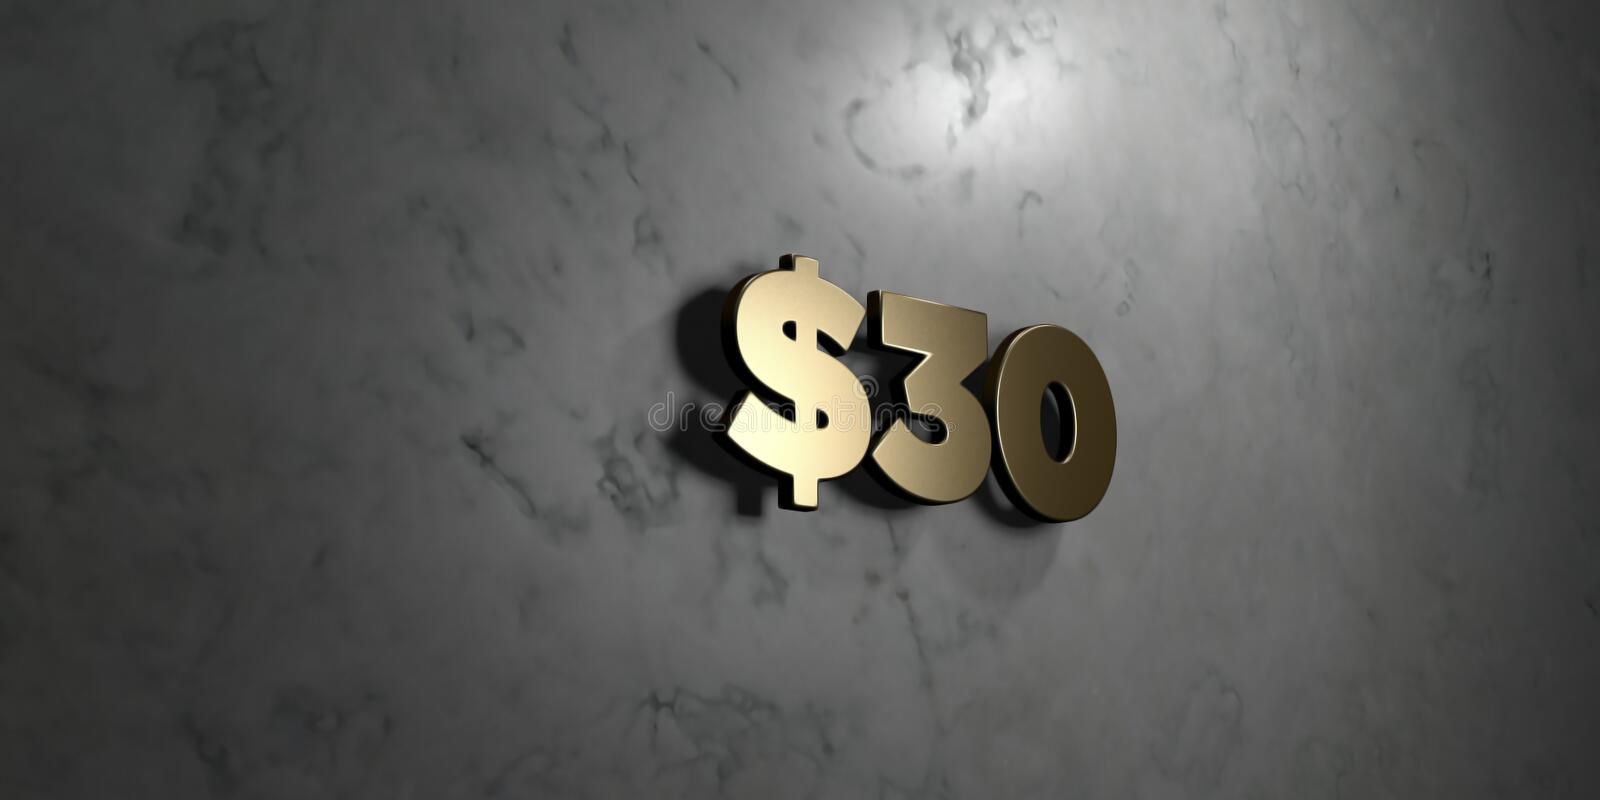 $30 - Gold sign mounted on glossy marble wall - 3D rendered royalty free stock illustration stock illustration